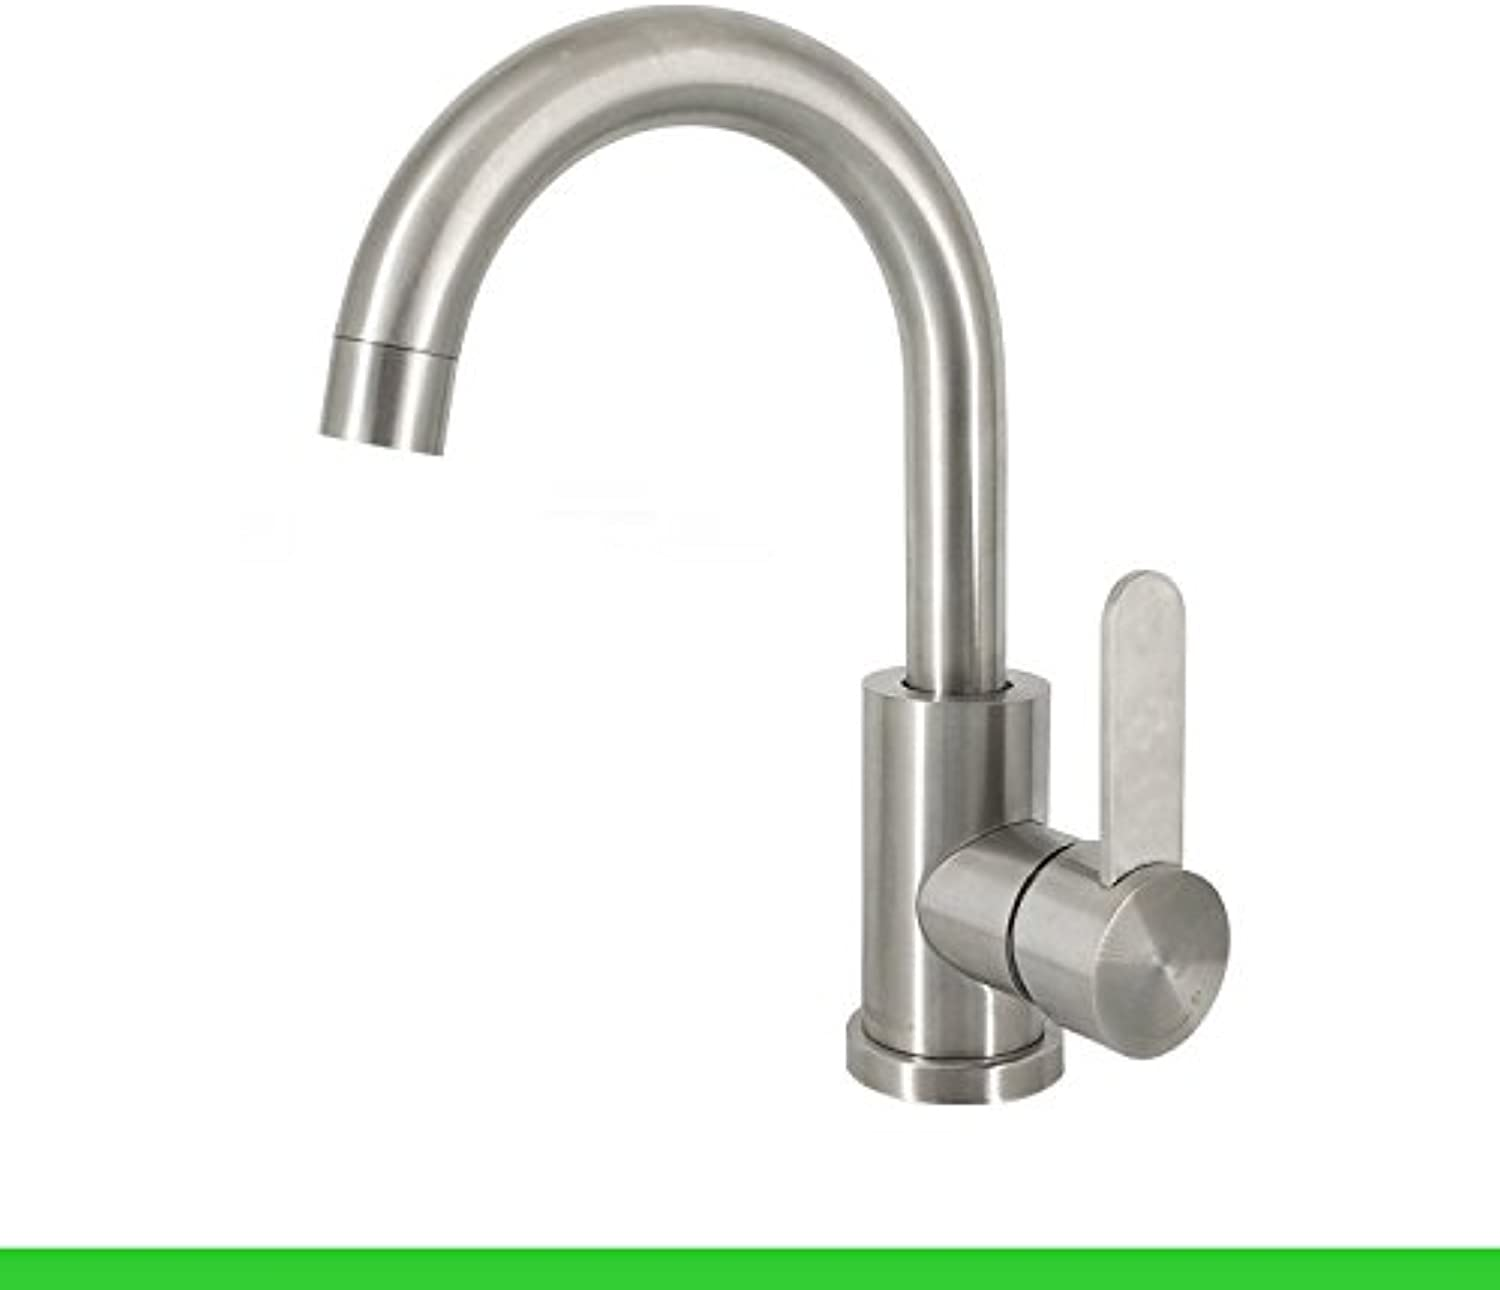 JWLT 304 stainless steel wire drawing lead-free basin, hot and cold water basin, hand basin potable basin, single hole can be redated,304- cold and hot small bend - no inlet pipe